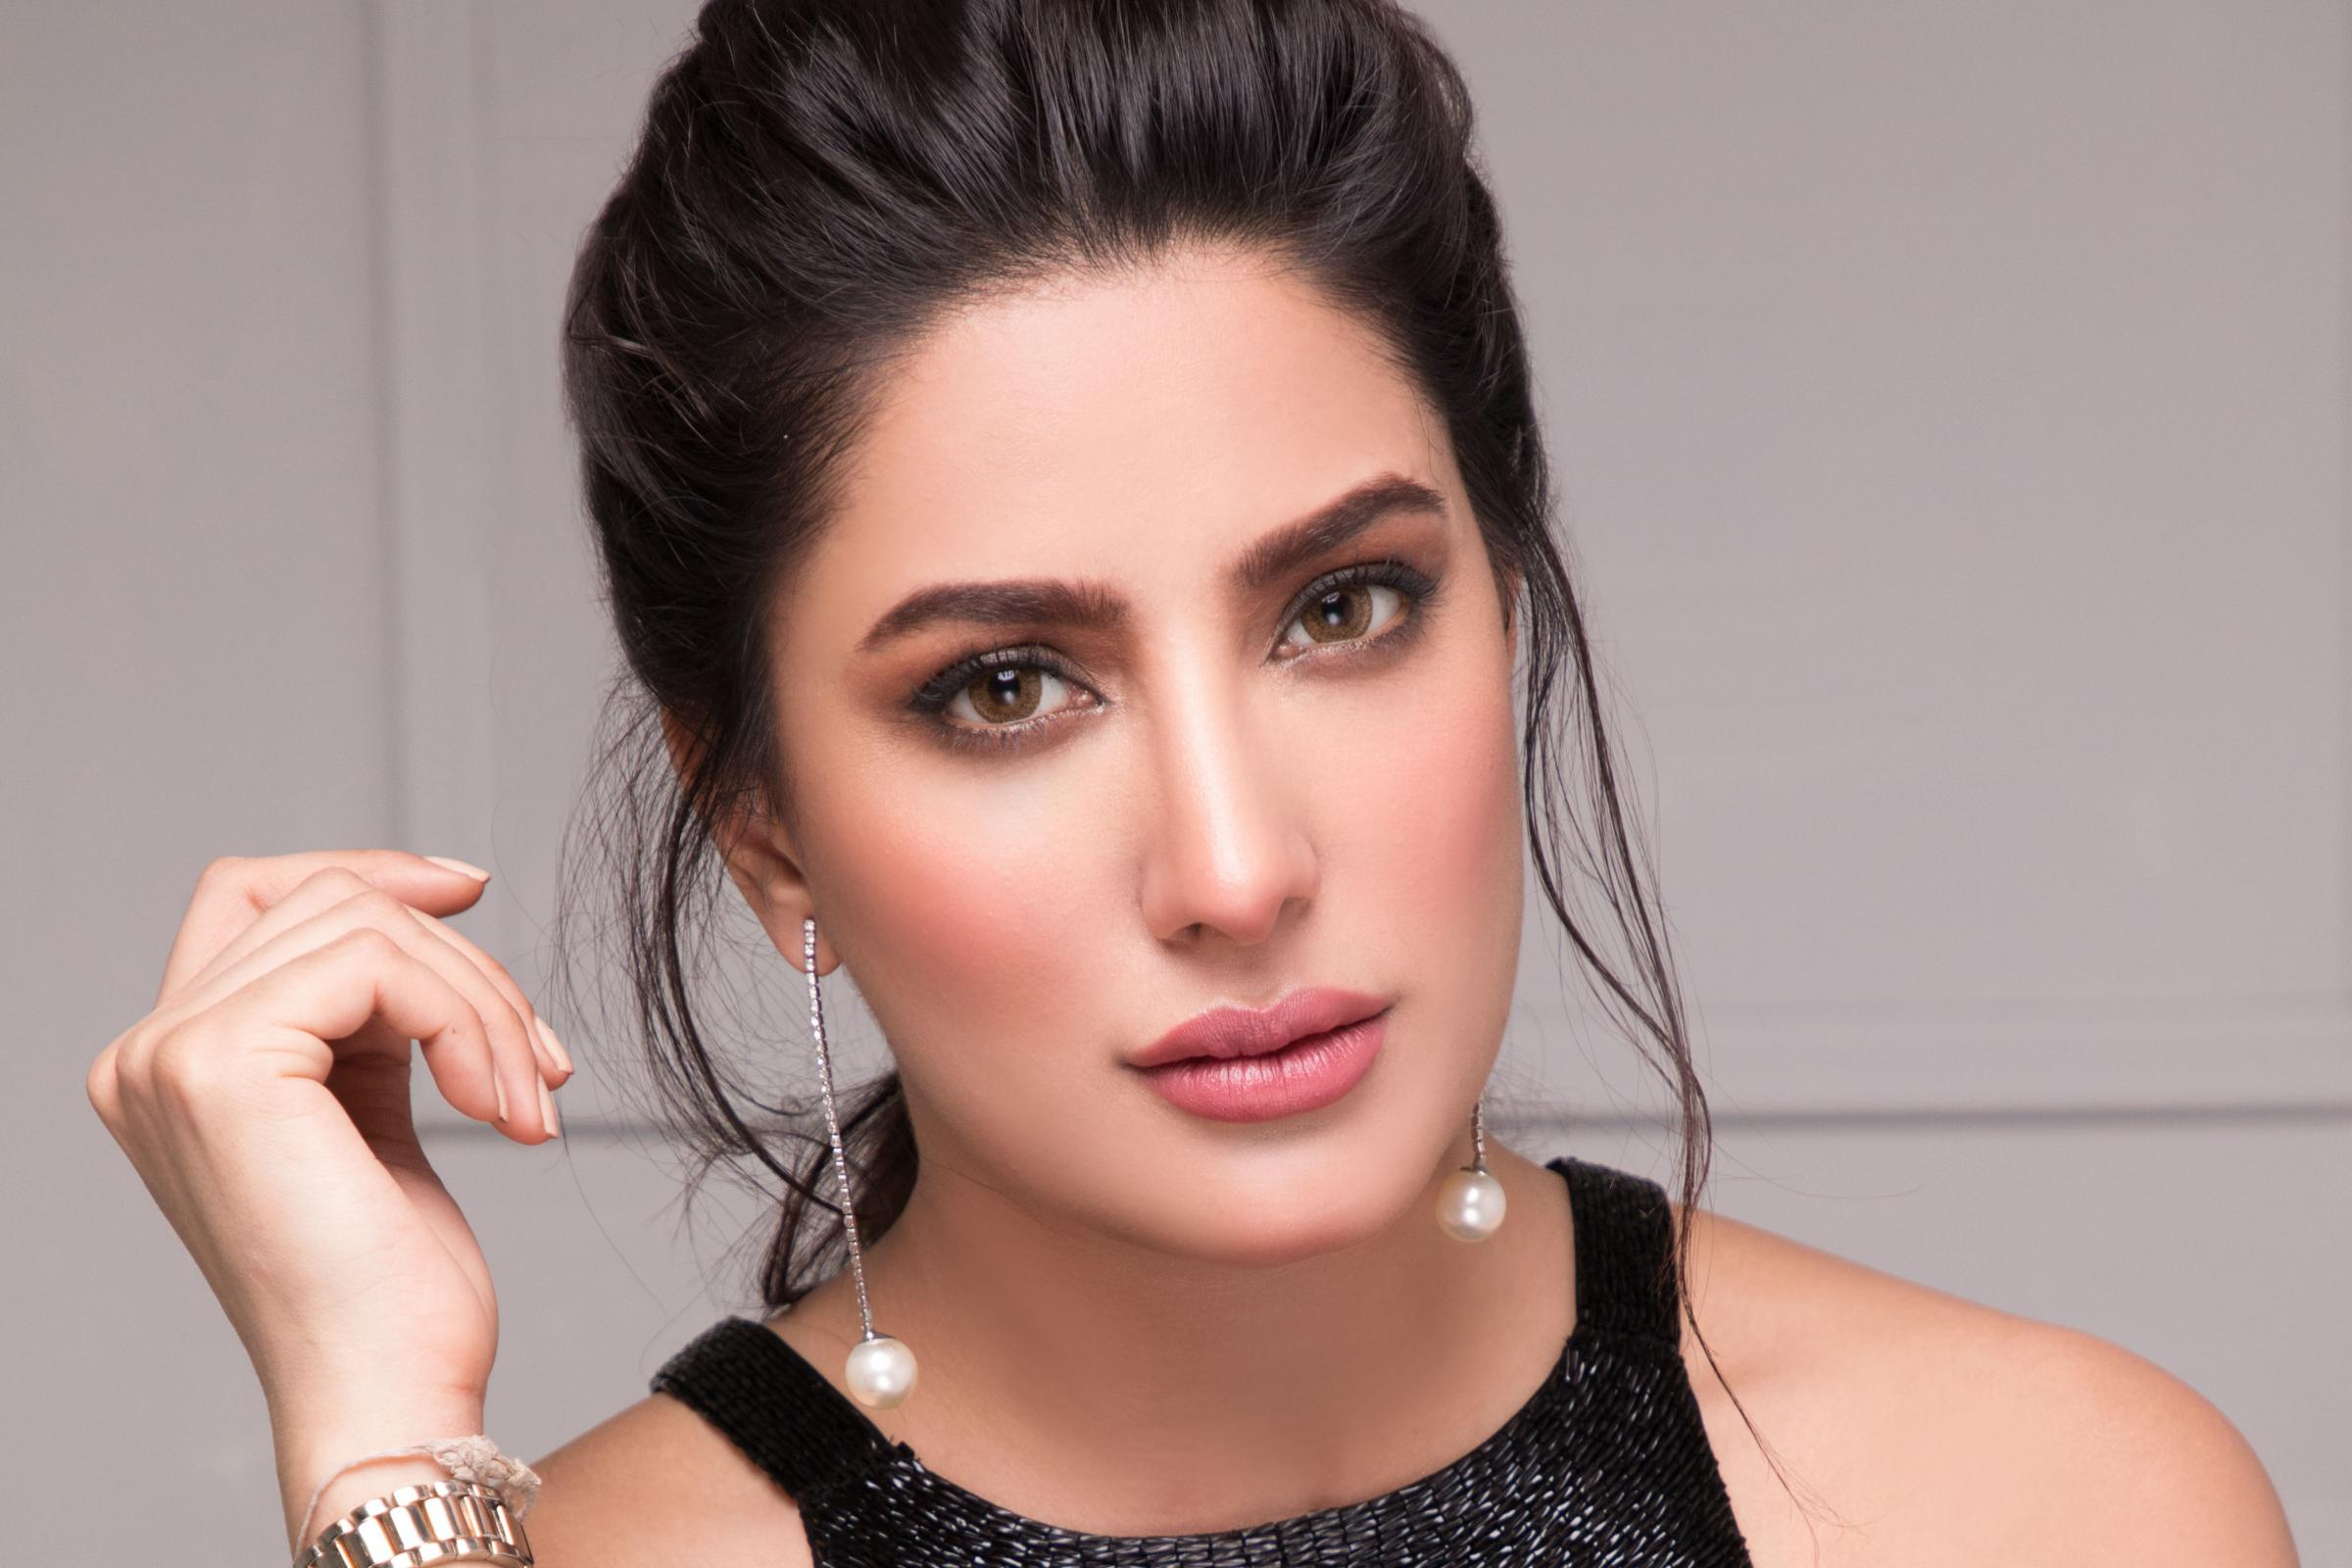 Mehwish Hayat Being Criticized For Comparing With Imran Khan